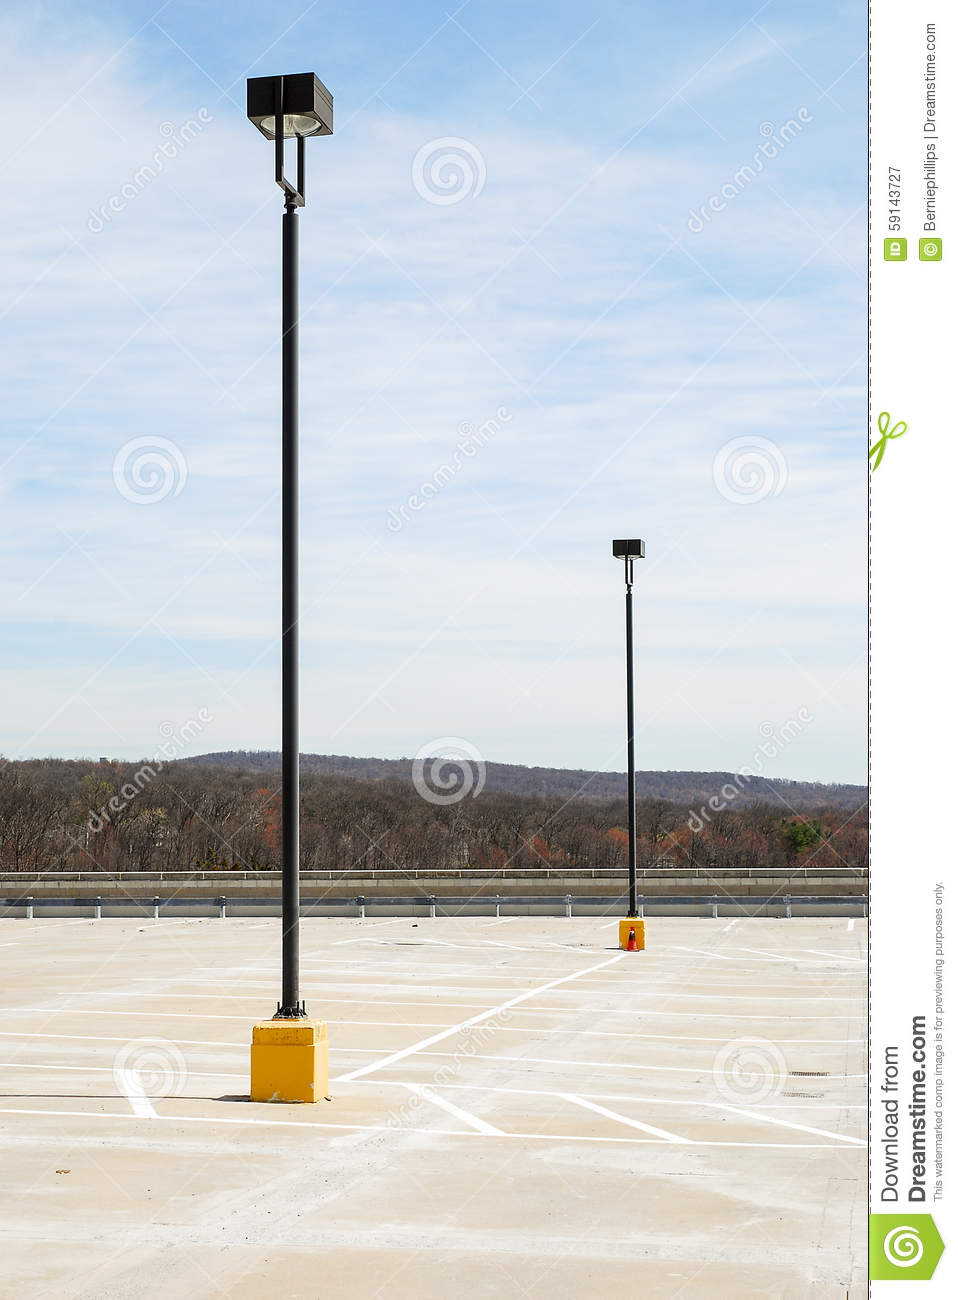 Parking lot lights stock image image of roof lamps 59143727 parking lot lights aloadofball Gallery